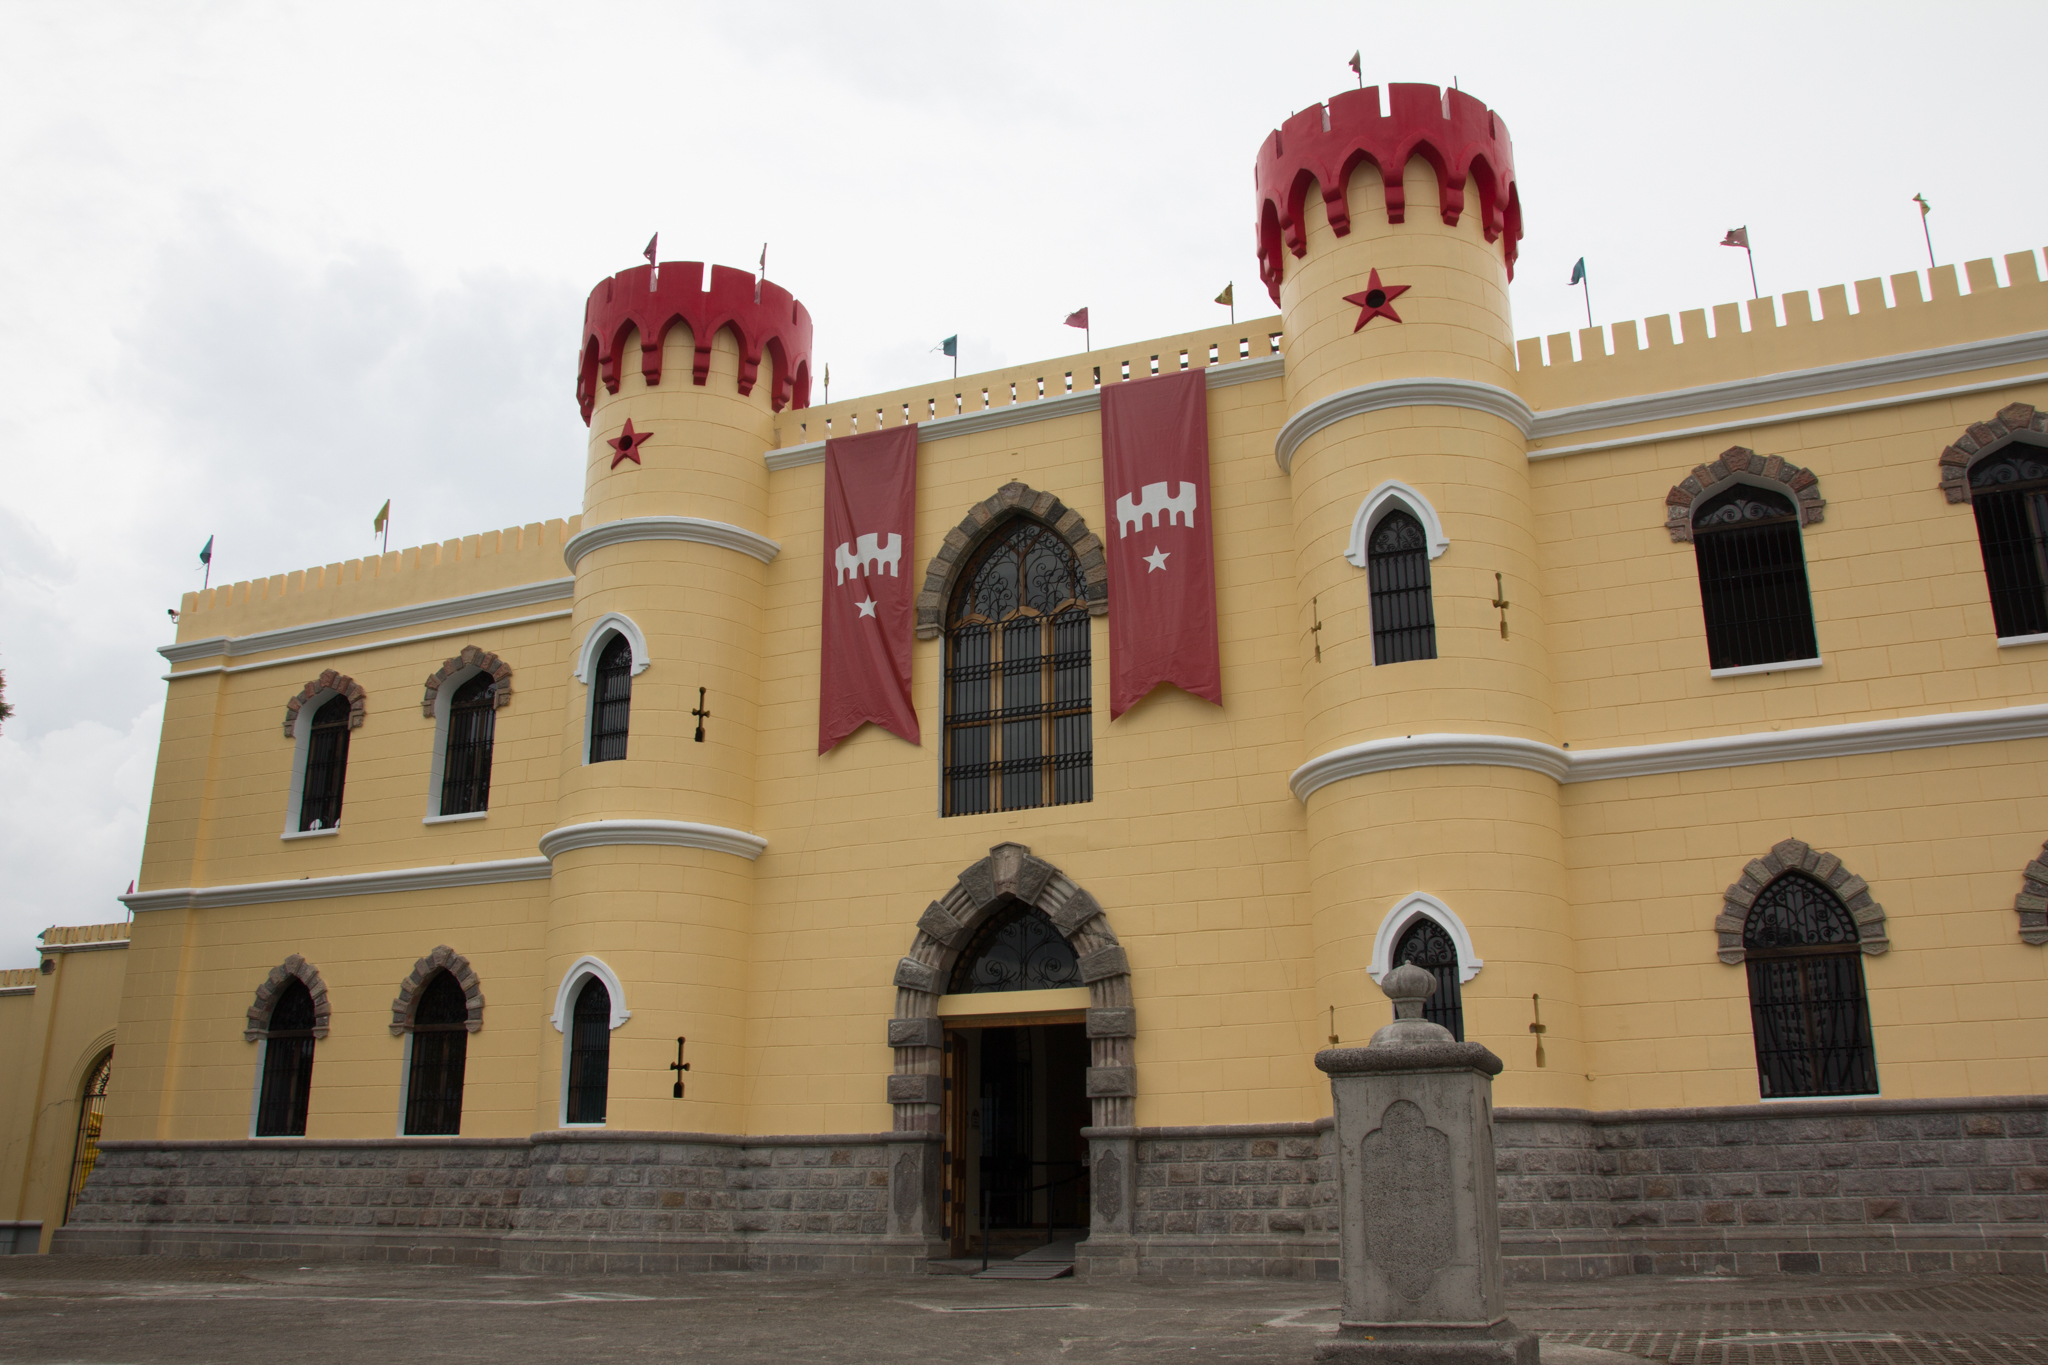 This museum in San Jose, Costa Rica used to be a prison. It has been remade into an art gallery and children's museum and is free to enter!